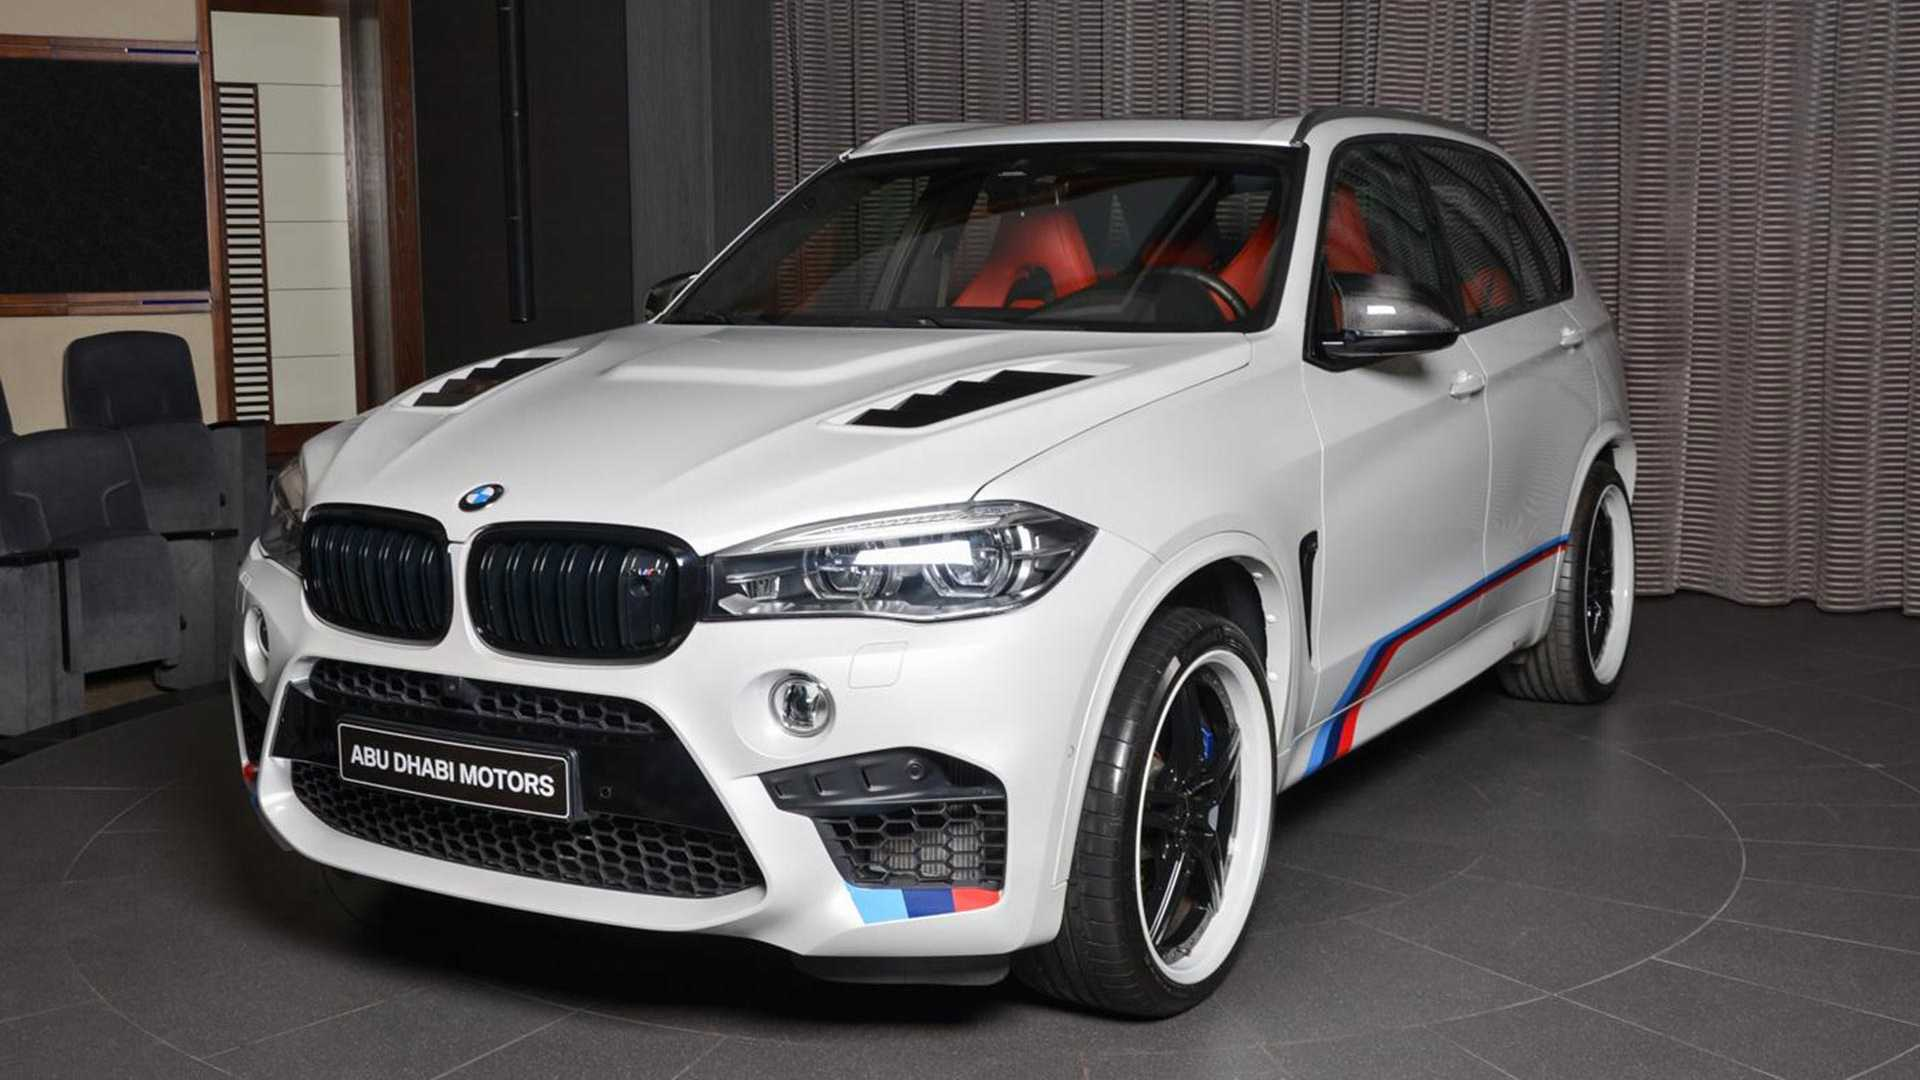 BMW X5 M Gets An Overdose Of Upgrades In Abu Dhabi